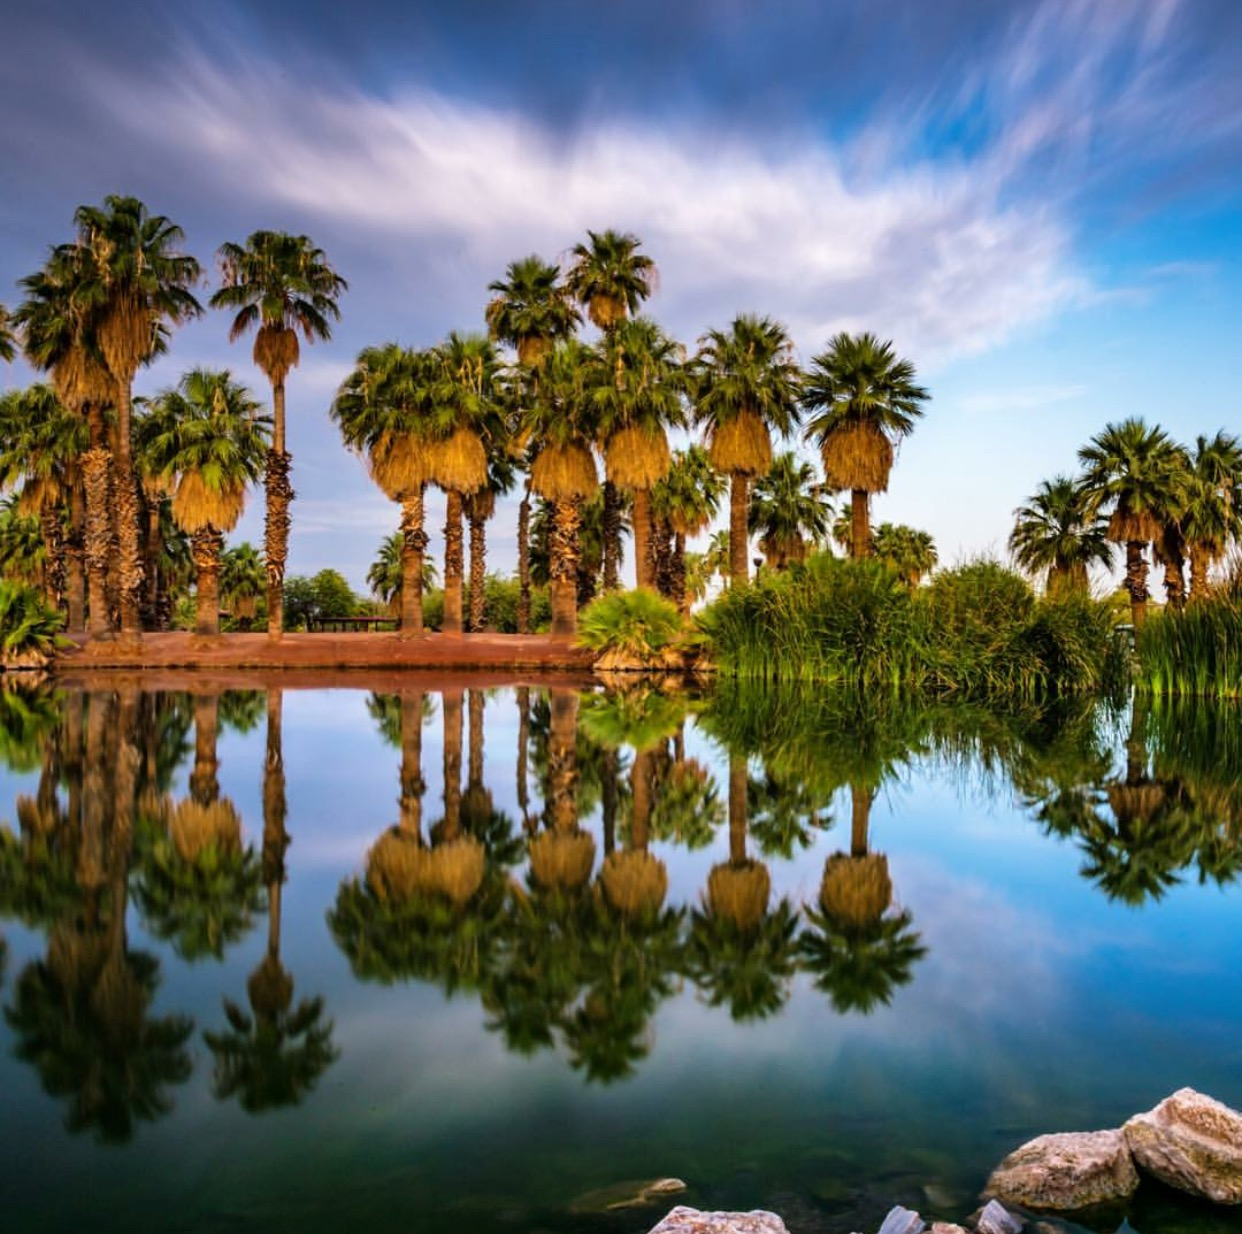 Instagram Phoenix, Arizona: Our Weekly Top 10